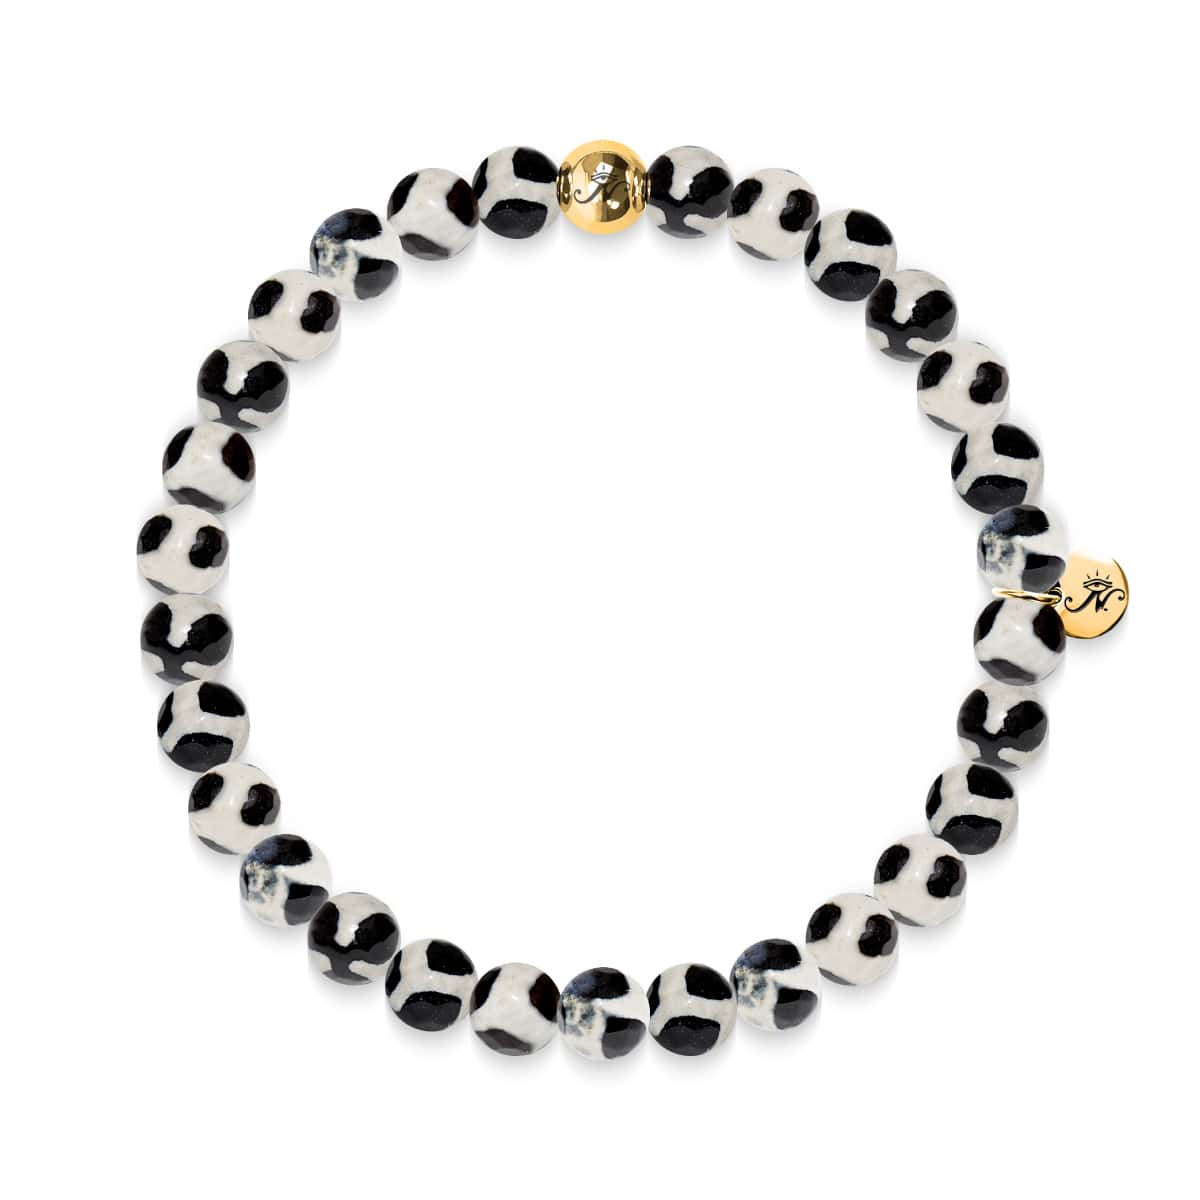 Prosperity | Gold Essence Black Spotted Faceted Agate Bracelet